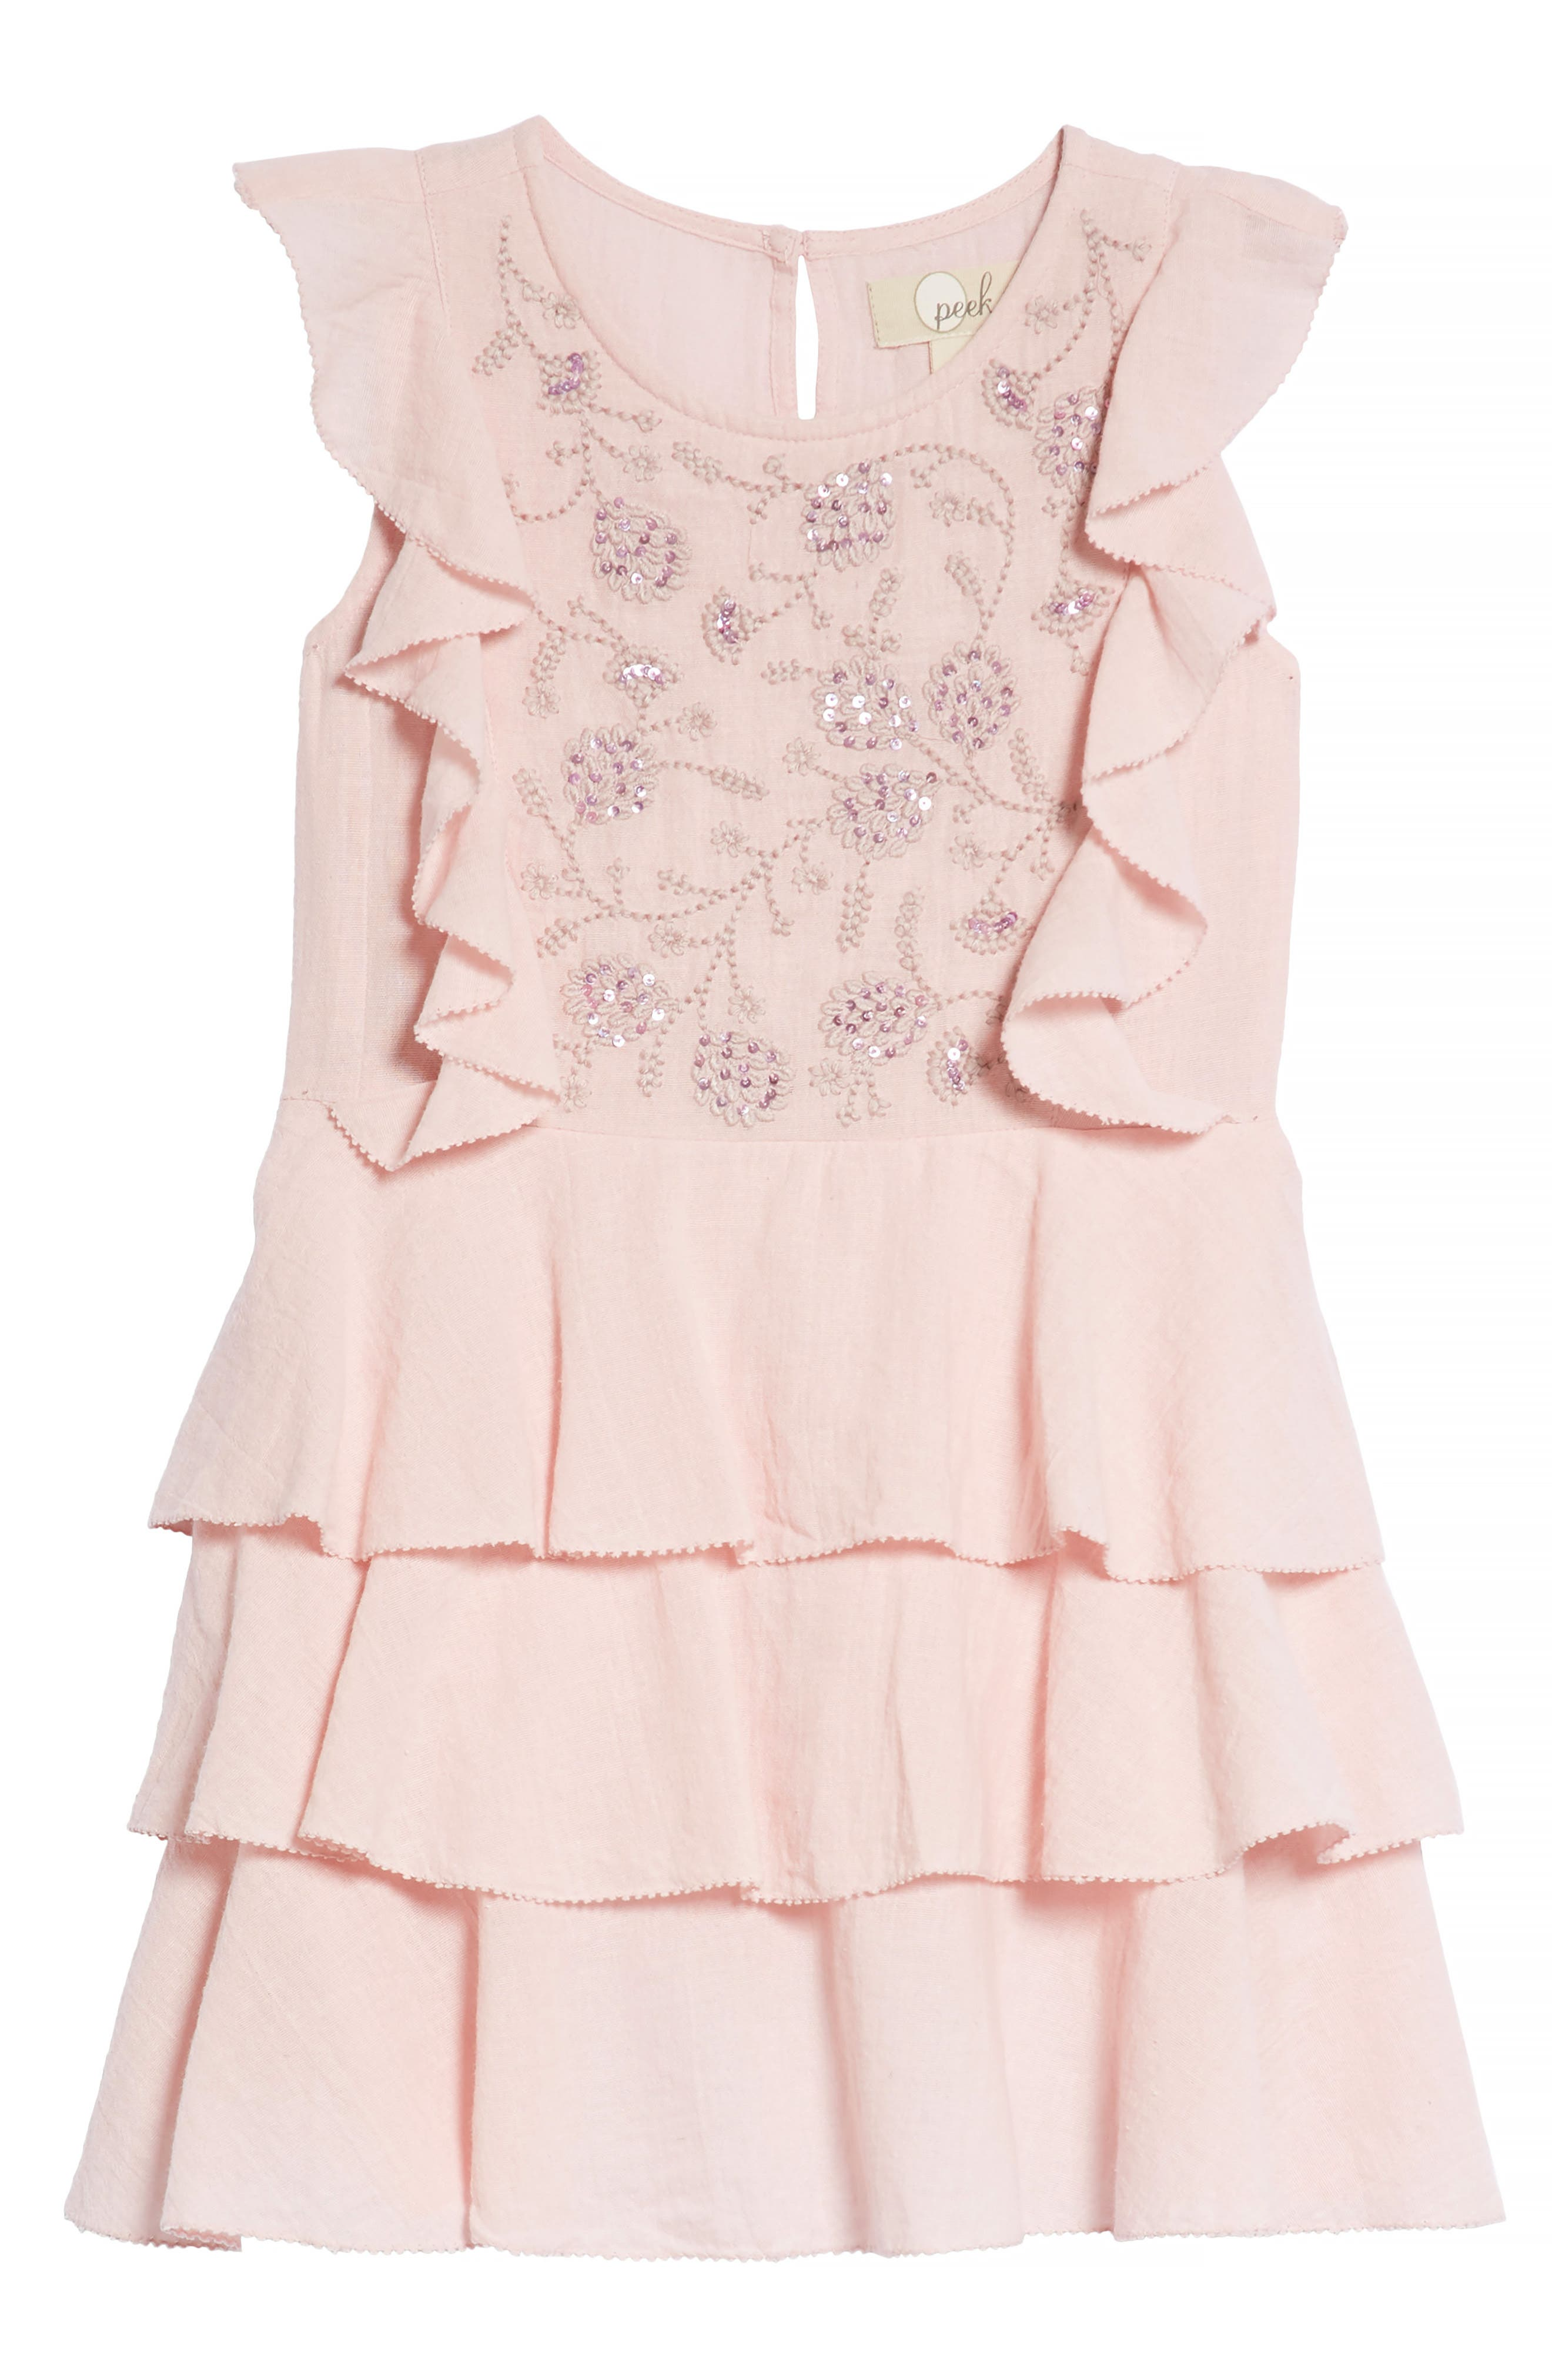 Madeline Tiered Dress,                             Main thumbnail 1, color,                             Blush